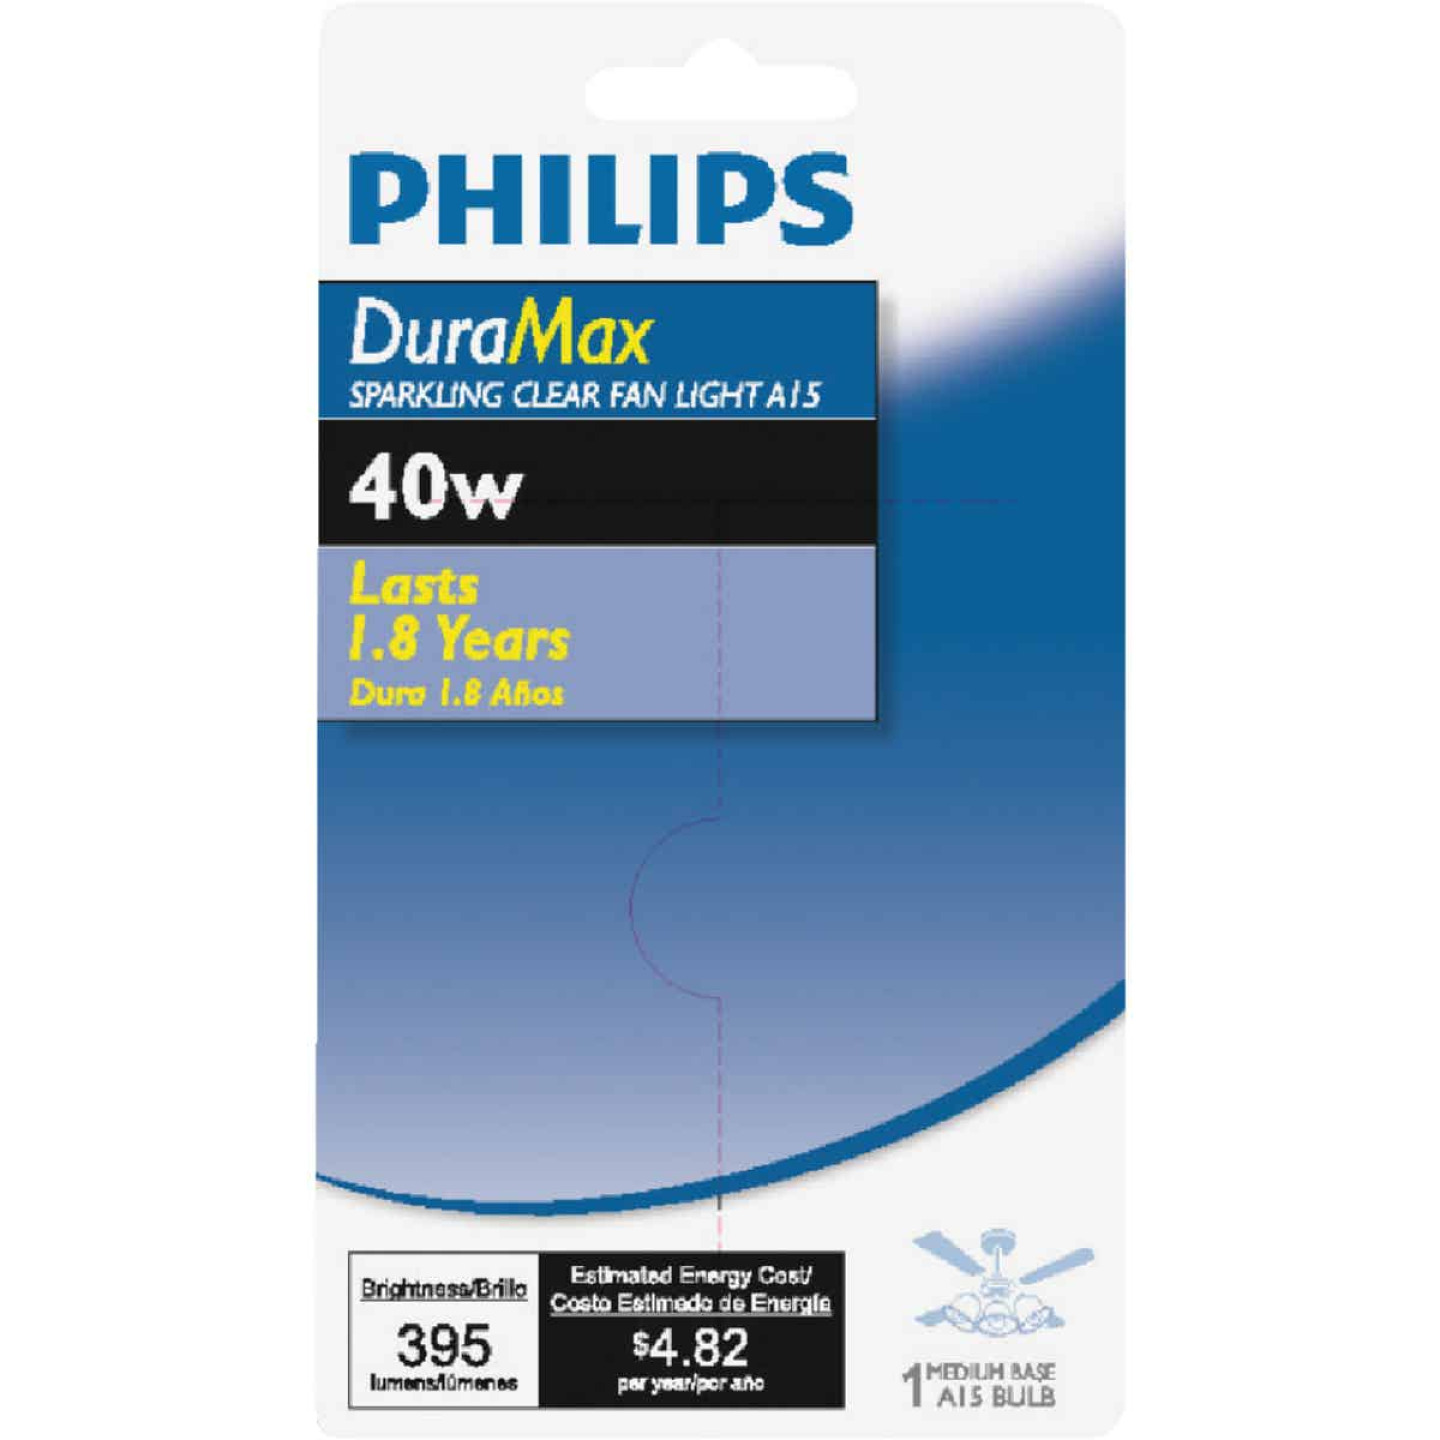 Philips DuraMax 40W Clear Medium A15 Incandescent Ceiling Fan Light Bulb Image 2